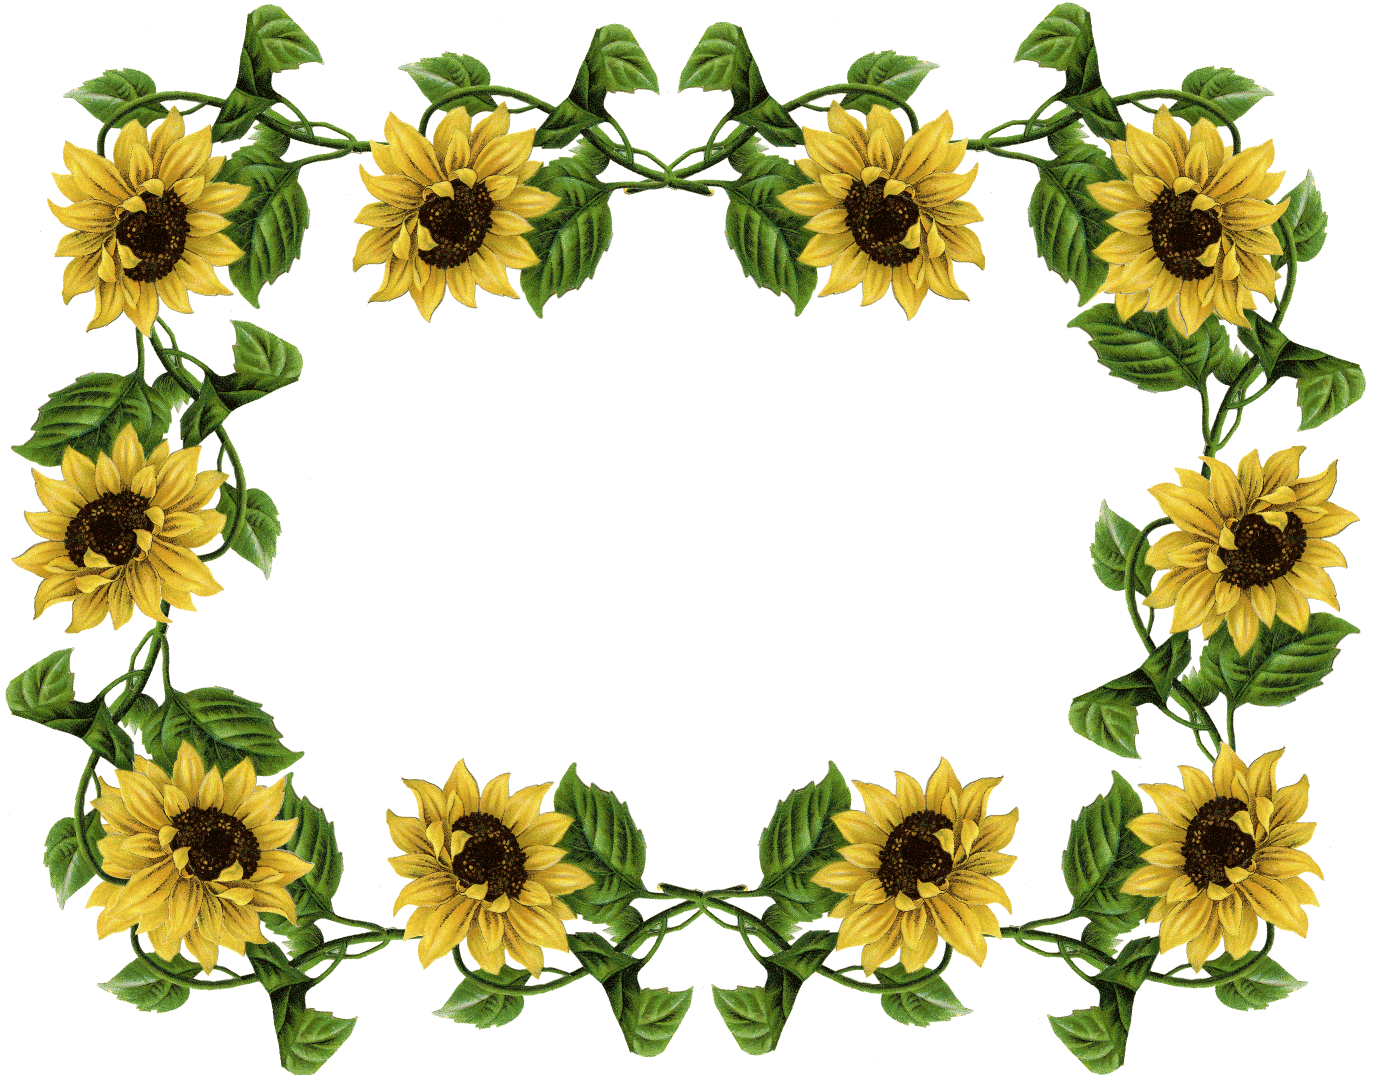 Sunflowers png row. Clipart sunflower huge